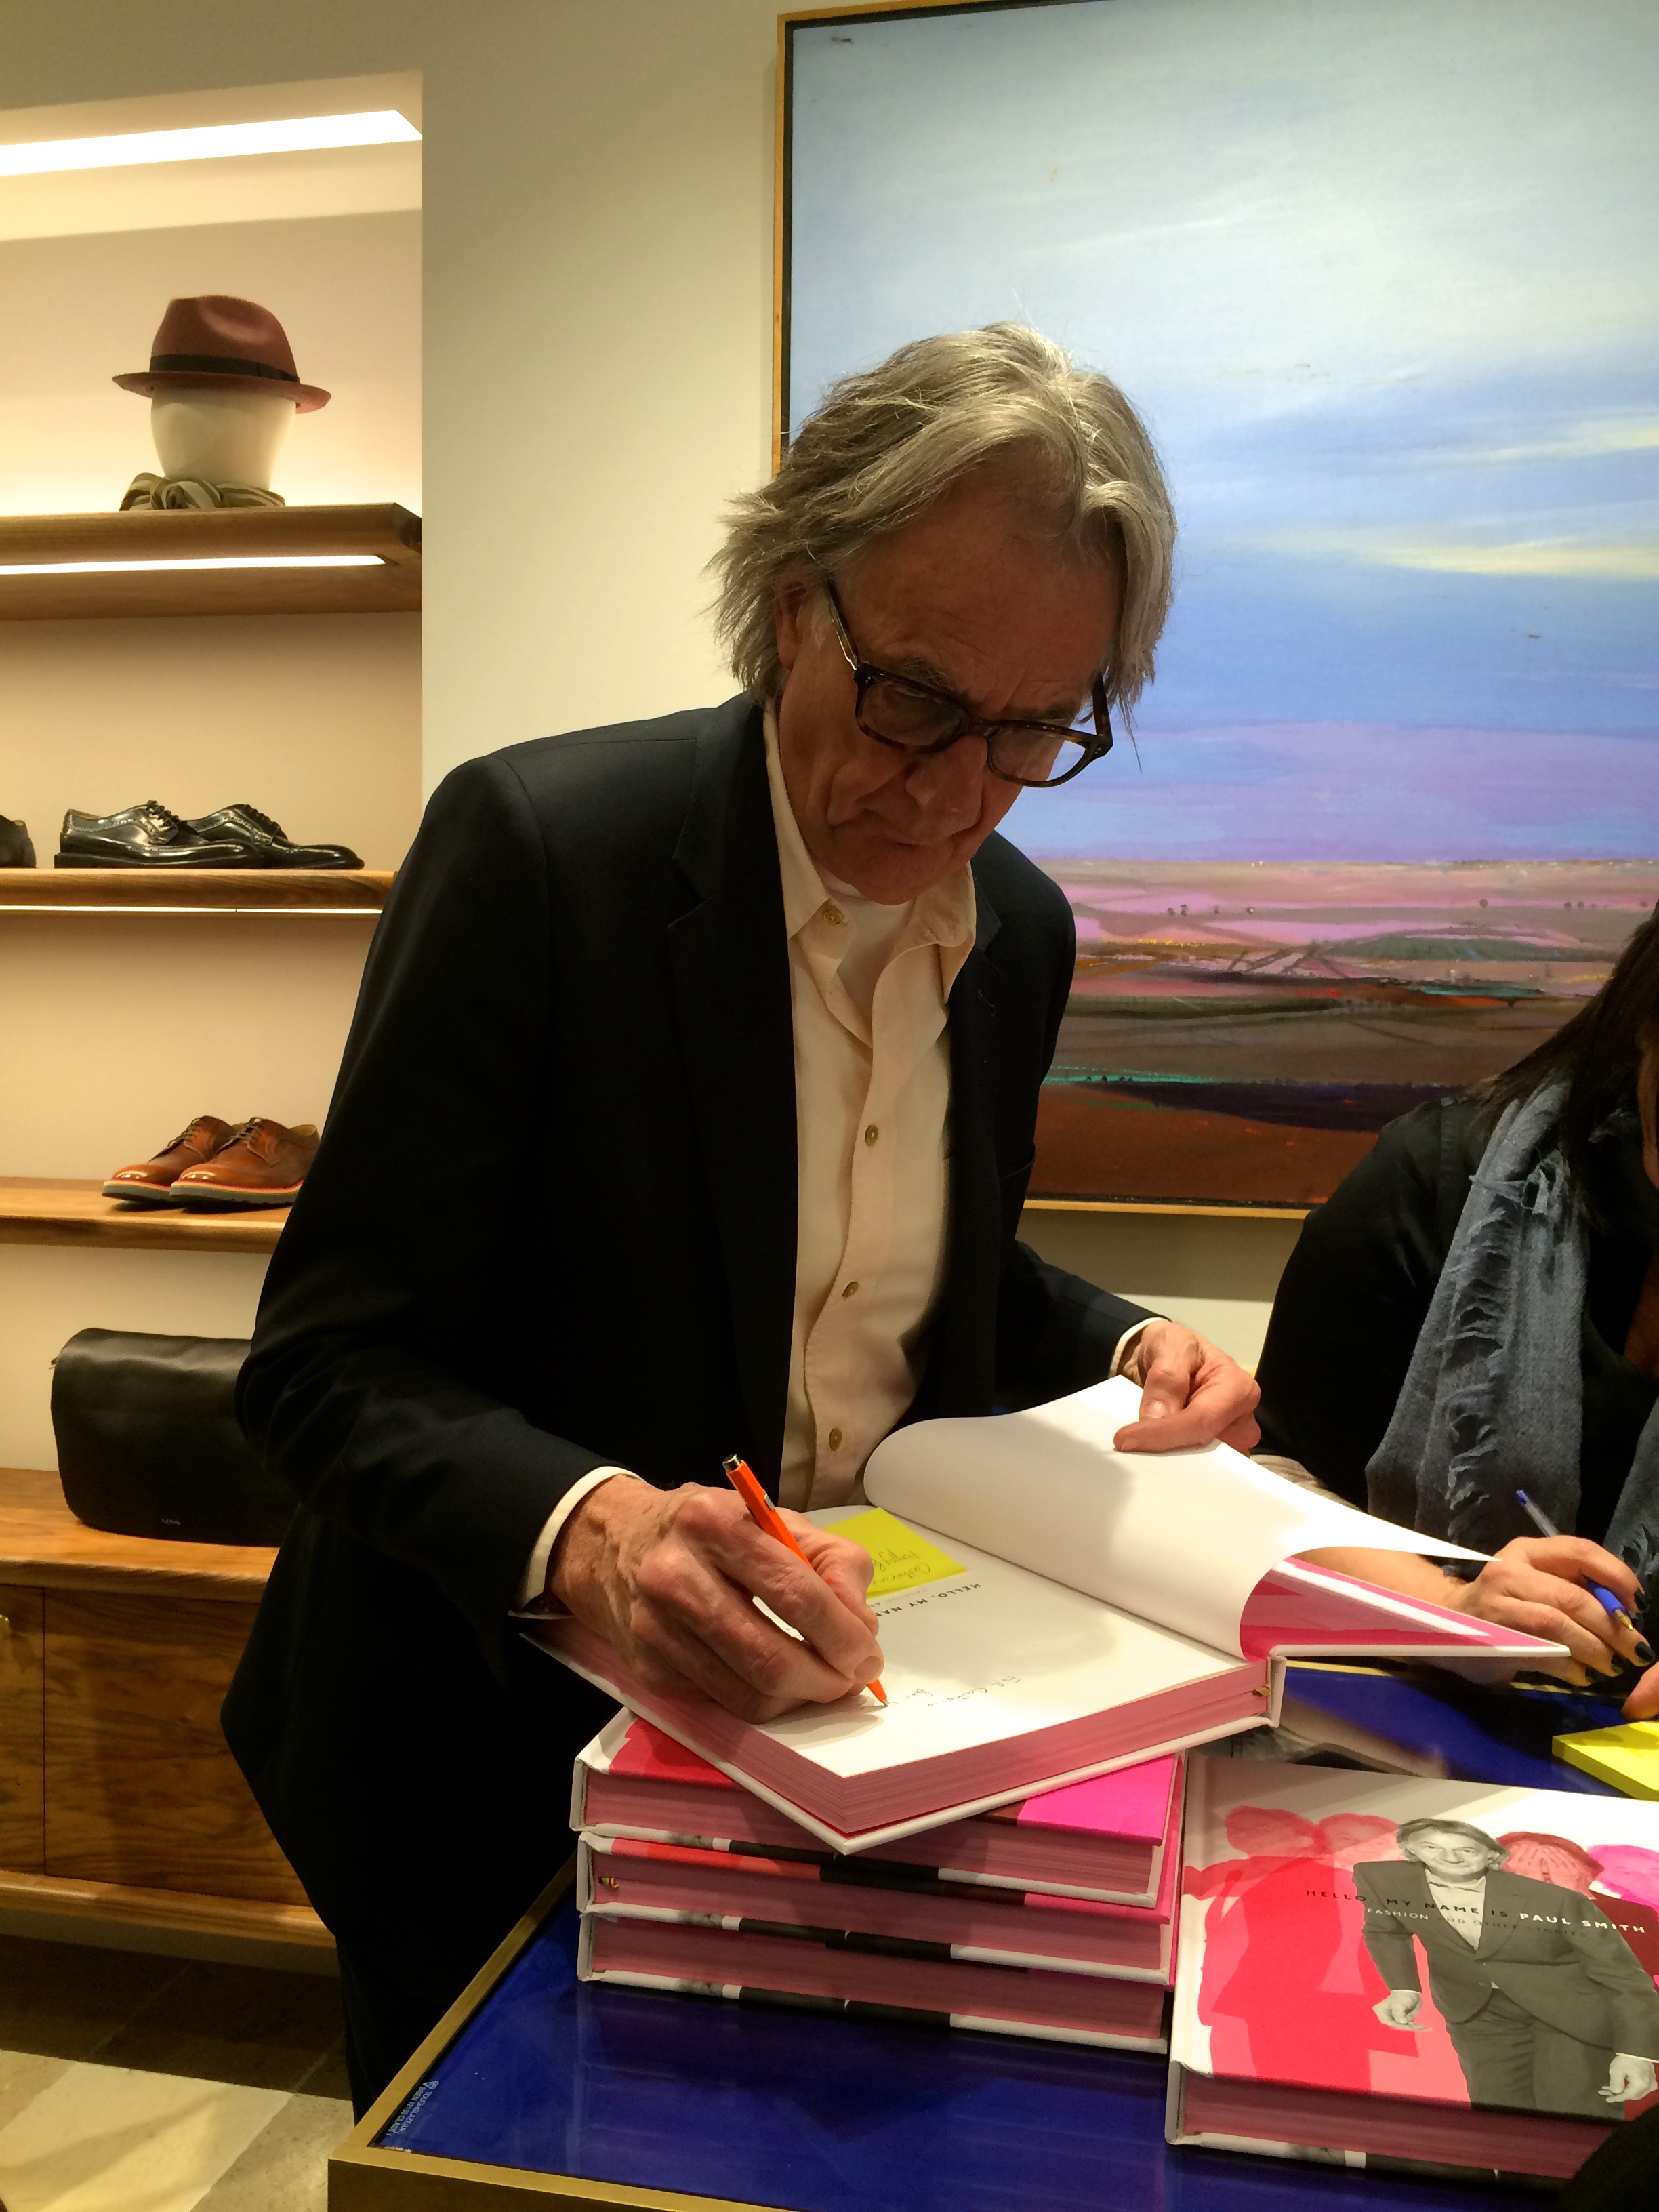 HELLO PAUL SMITH!